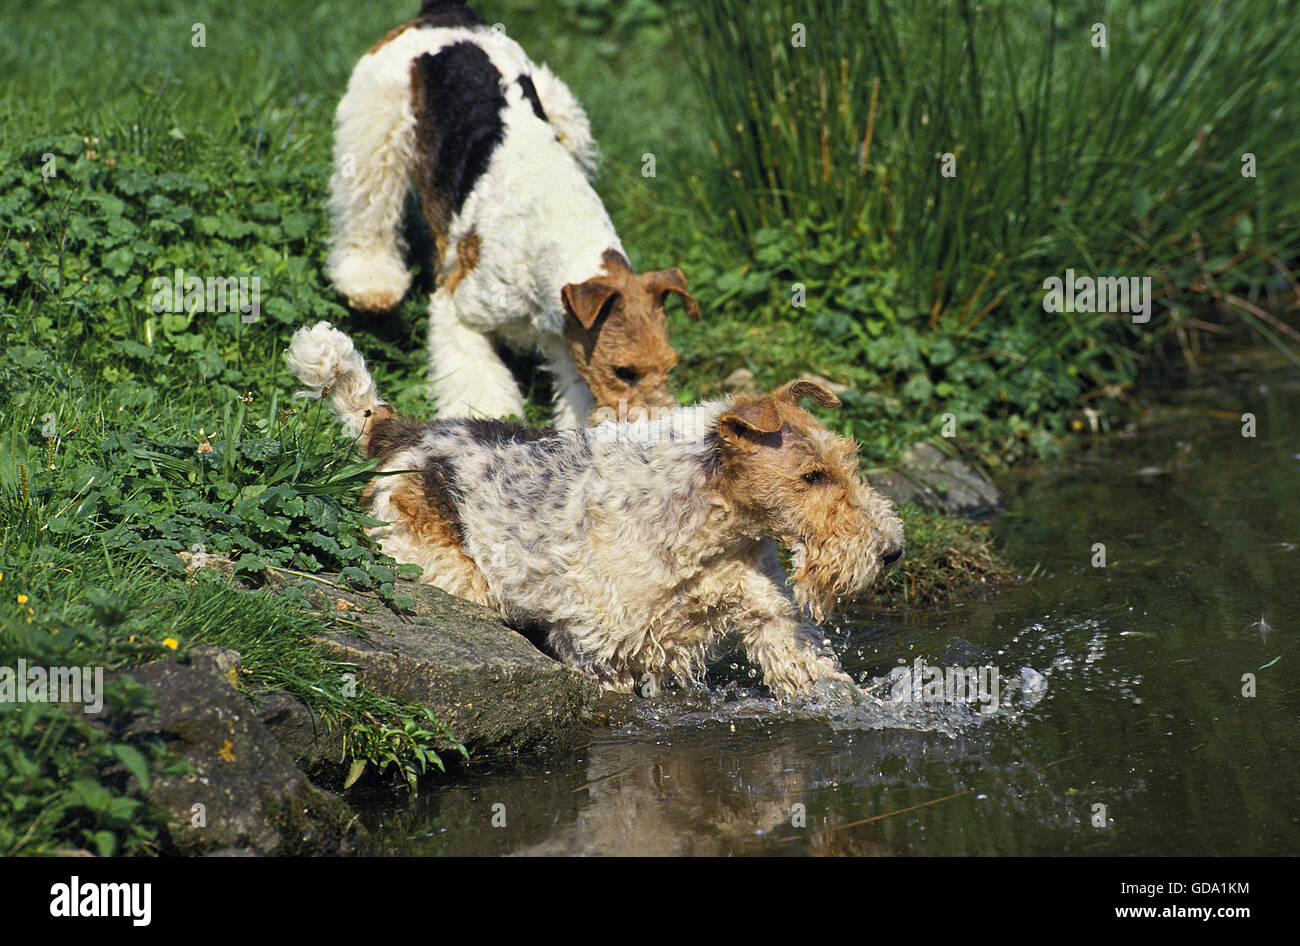 WIRE-HAIRED FOX TERRIER, ADULT ENTERING WATER - Stock Image